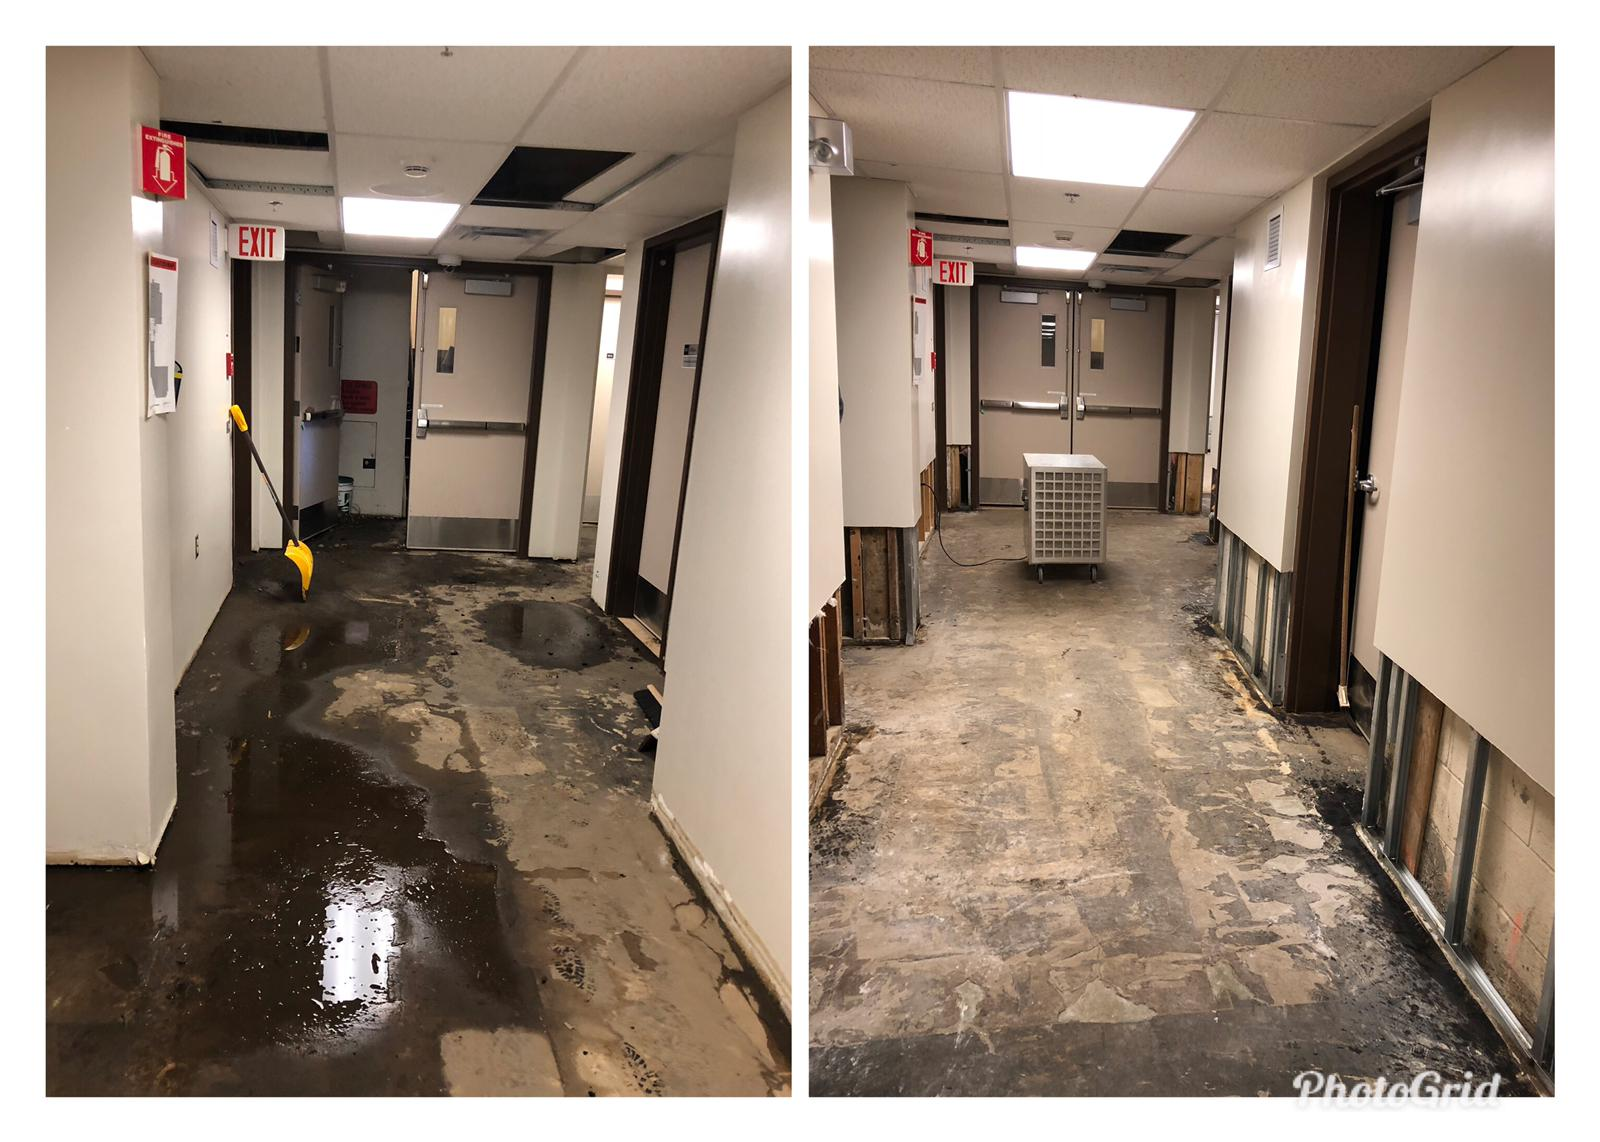 water damage restoration toronto, water damage services toronto, flood damage restoration toronto, flood damage services toronto